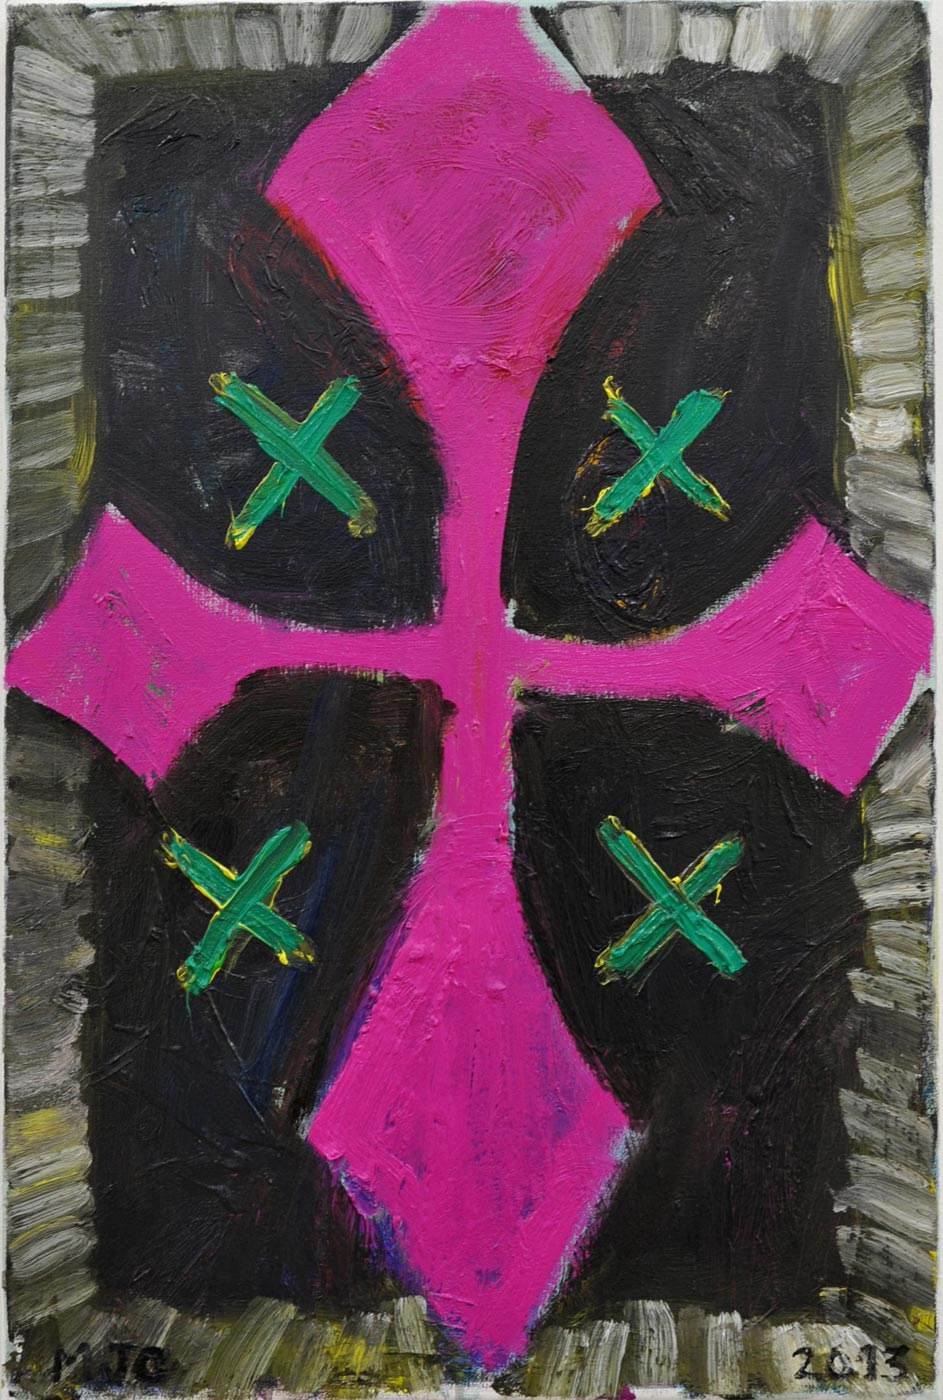 Manuel  Ocampo - Pink Cross with 4 Green X's, 2013